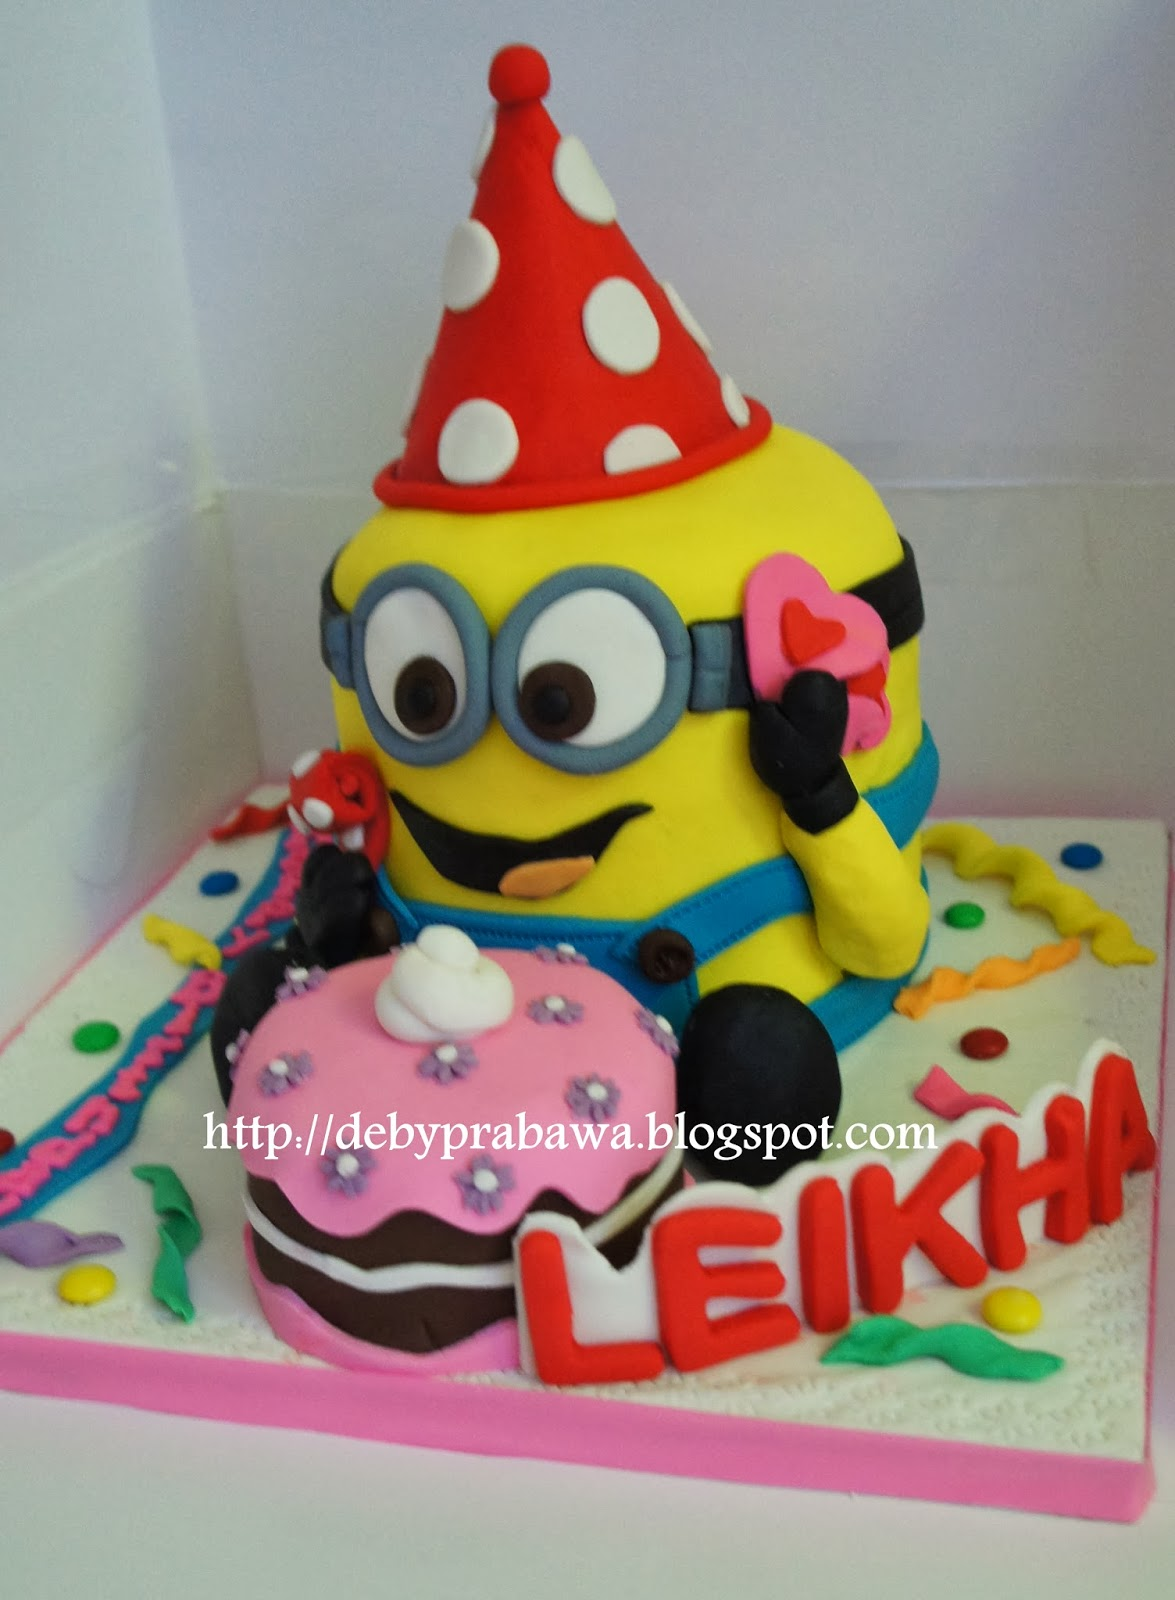 Butterfly Cake 3d Minion Cake For Leikha